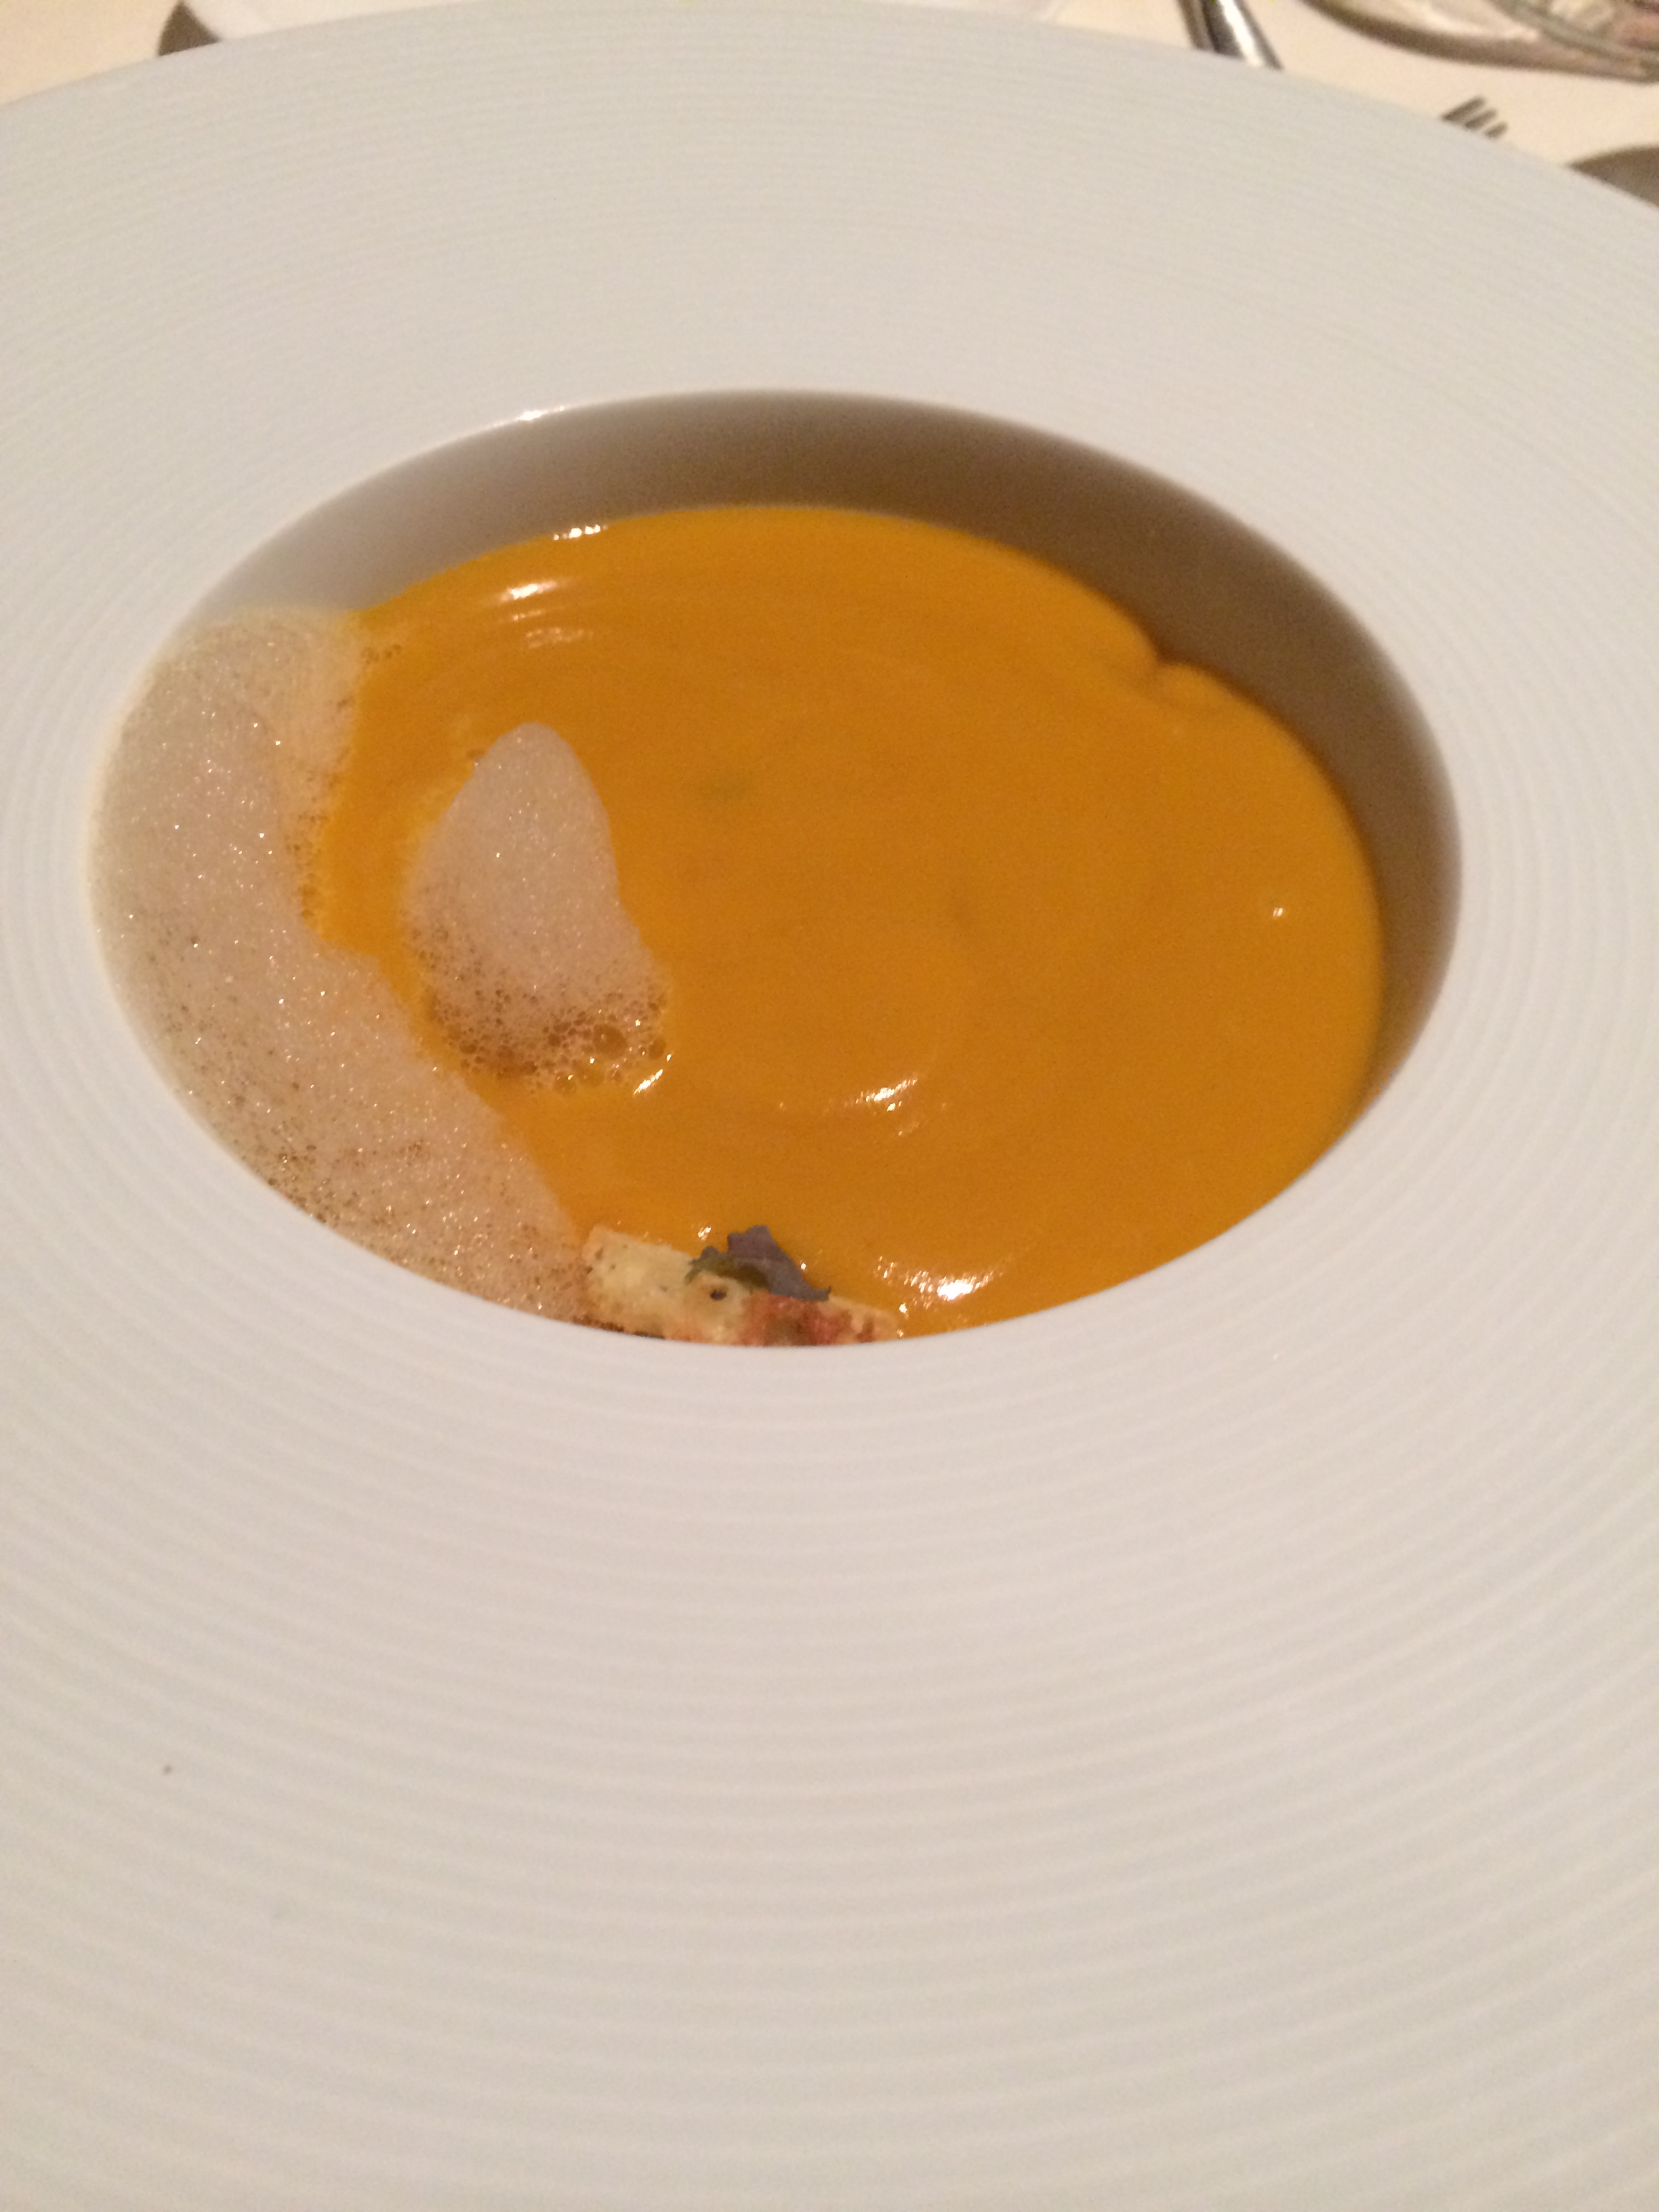 Lobster Kabocha squash soup - poured into the bowl tableside, a beautiful hearty soup that Owen LOVED.